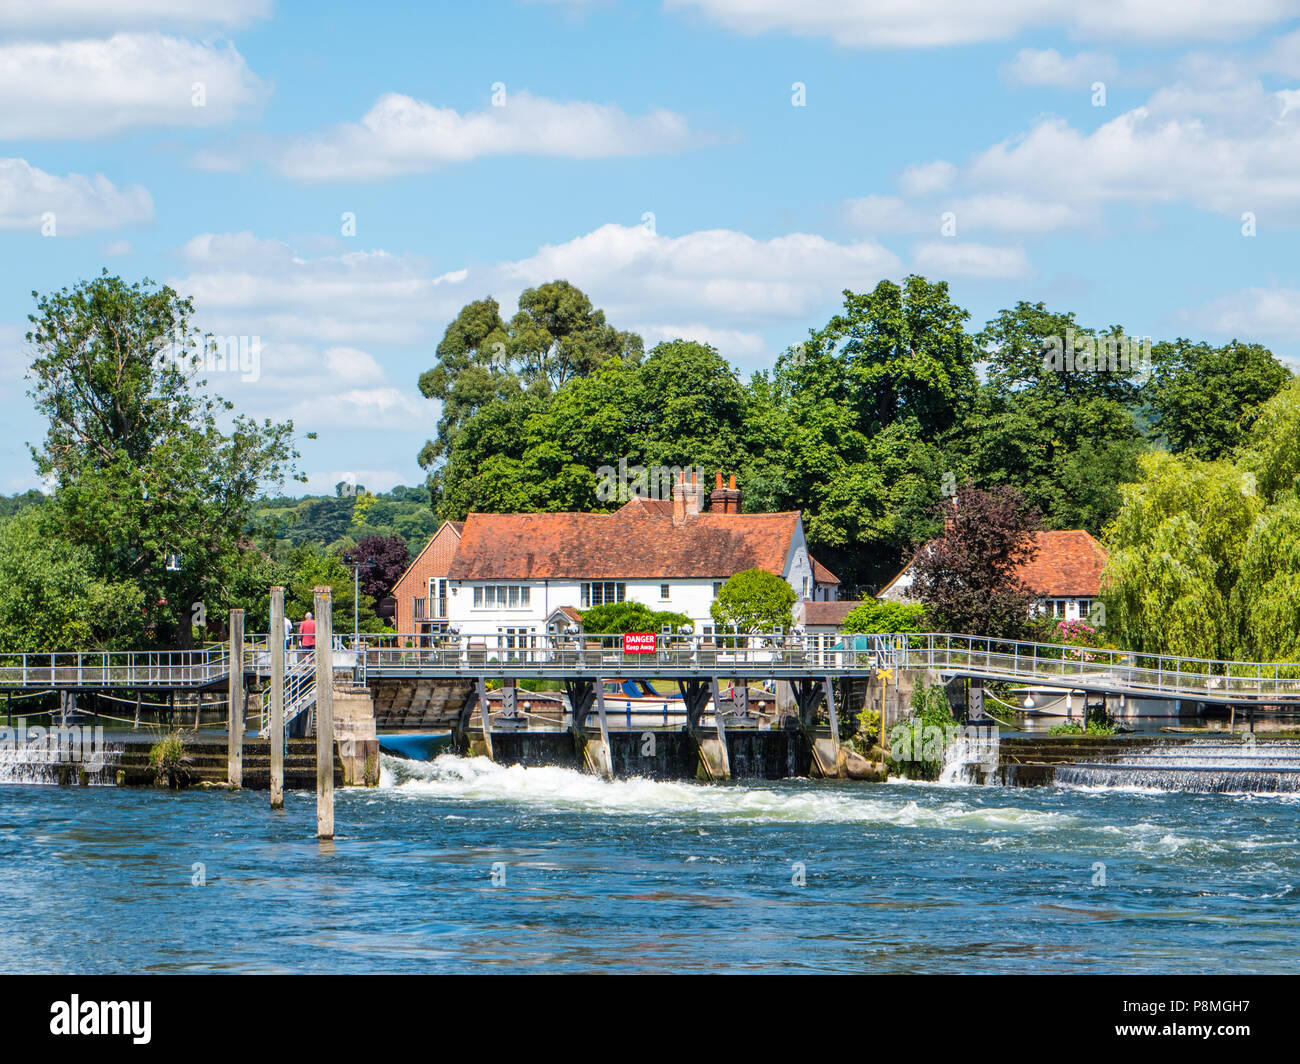 Weir at, Hambleden Lock and Weir, River Thames, Berkshire, England, UK, GB. - Stock Image